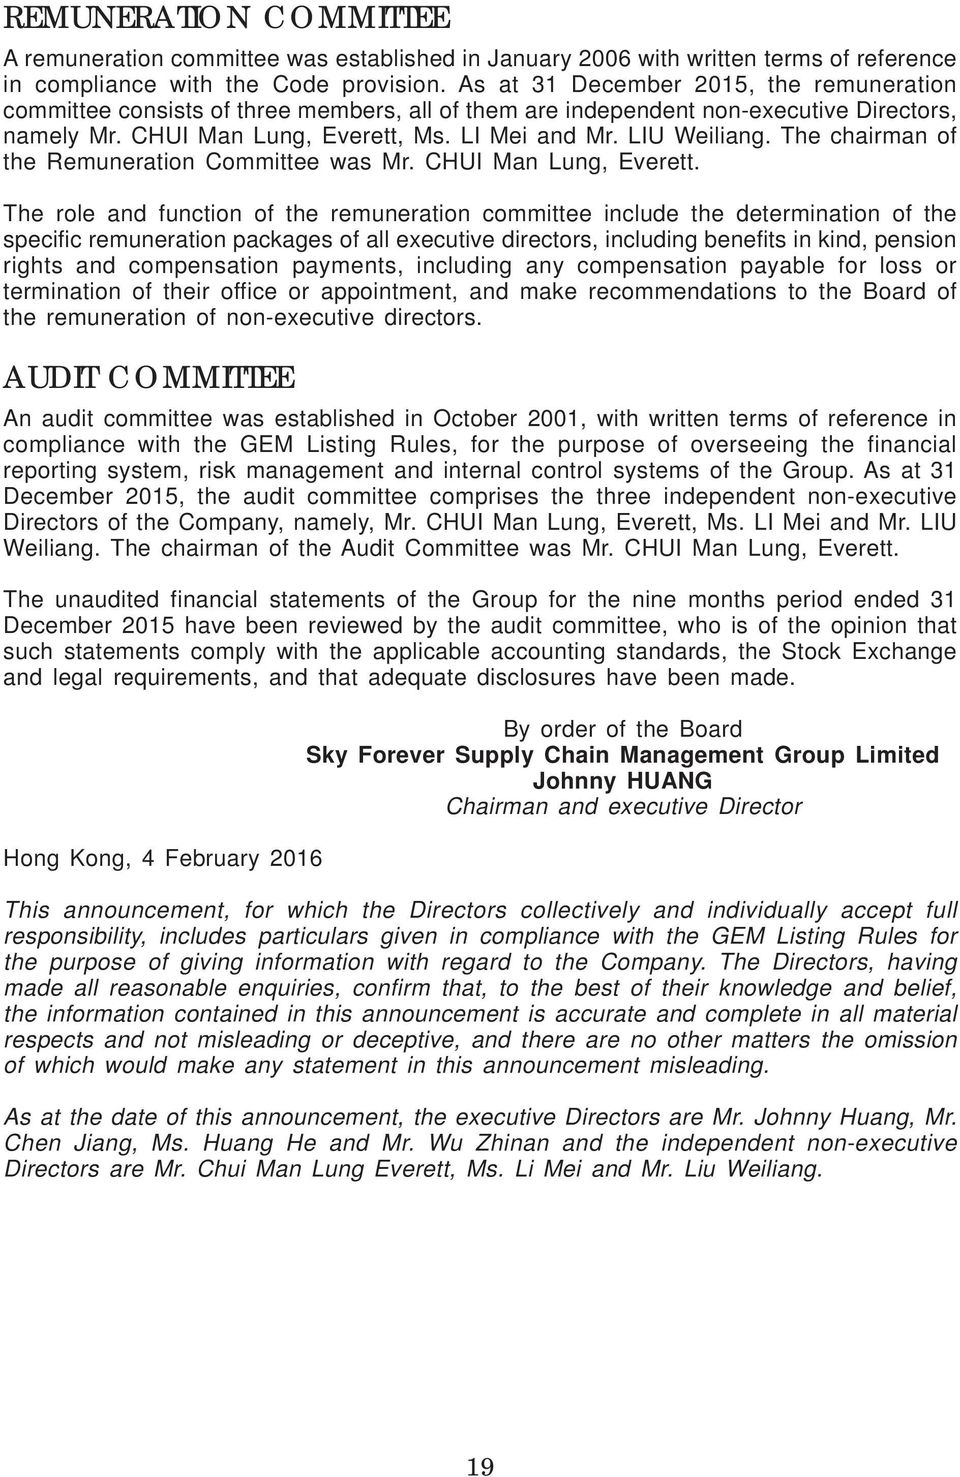 The chairman of the Remuneration Committee was Mr. CHUI Man Lung, Everett.